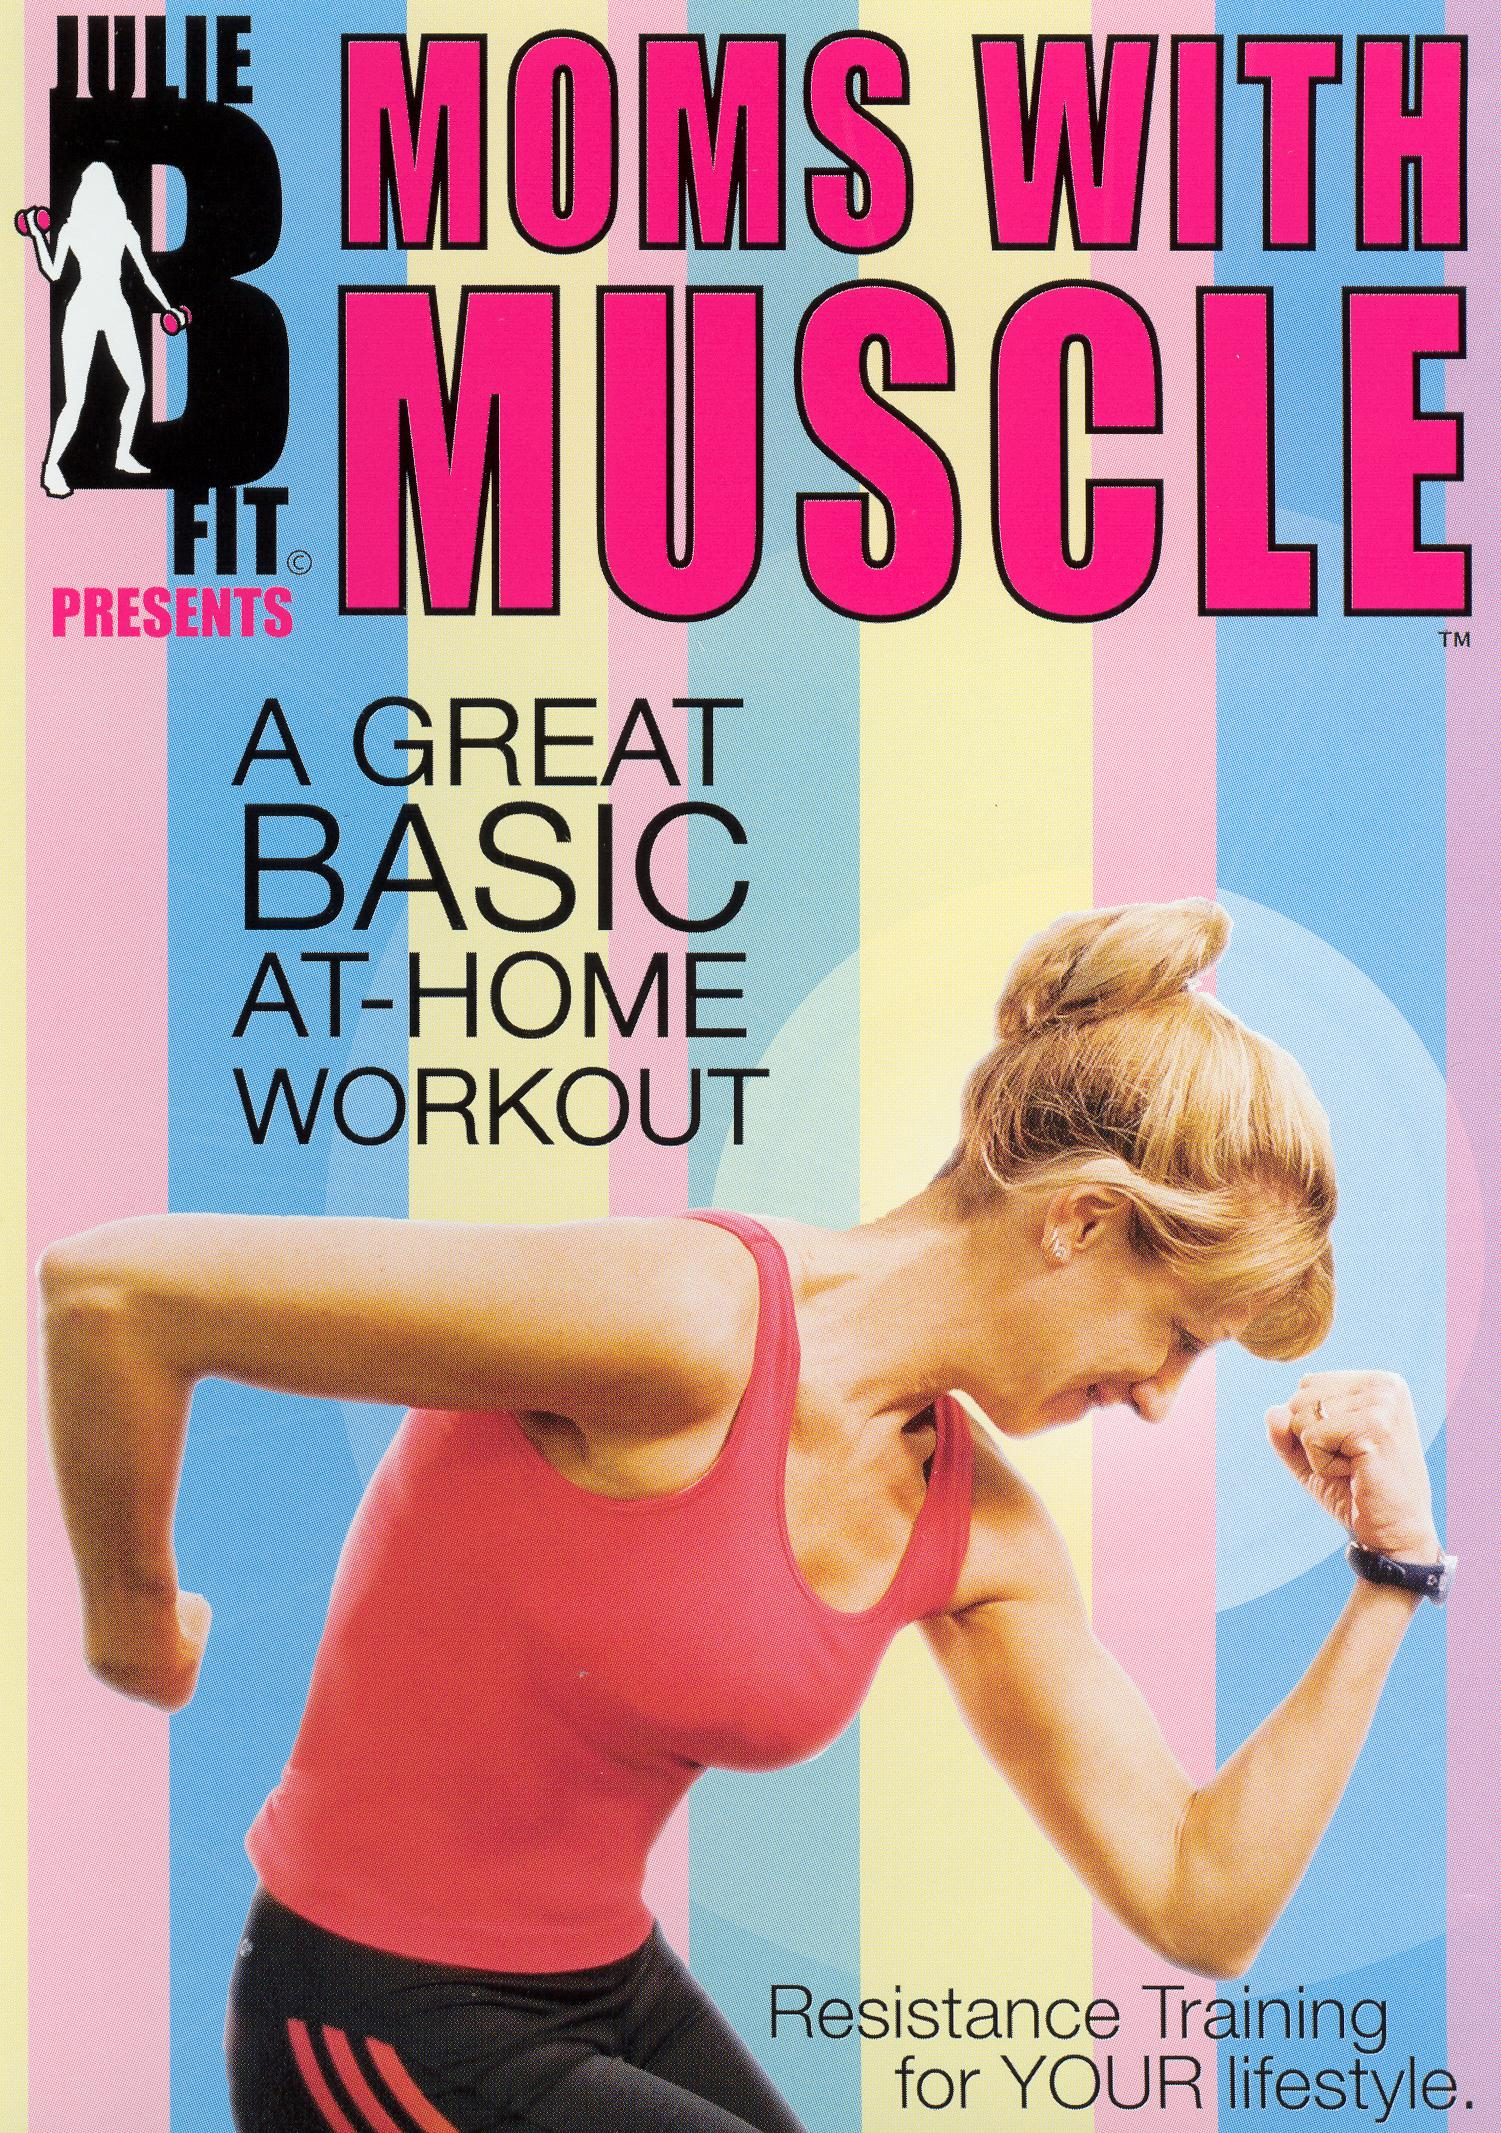 Julie B Fit Presents Moms with Muscle: A Great Basic At-Home Workout